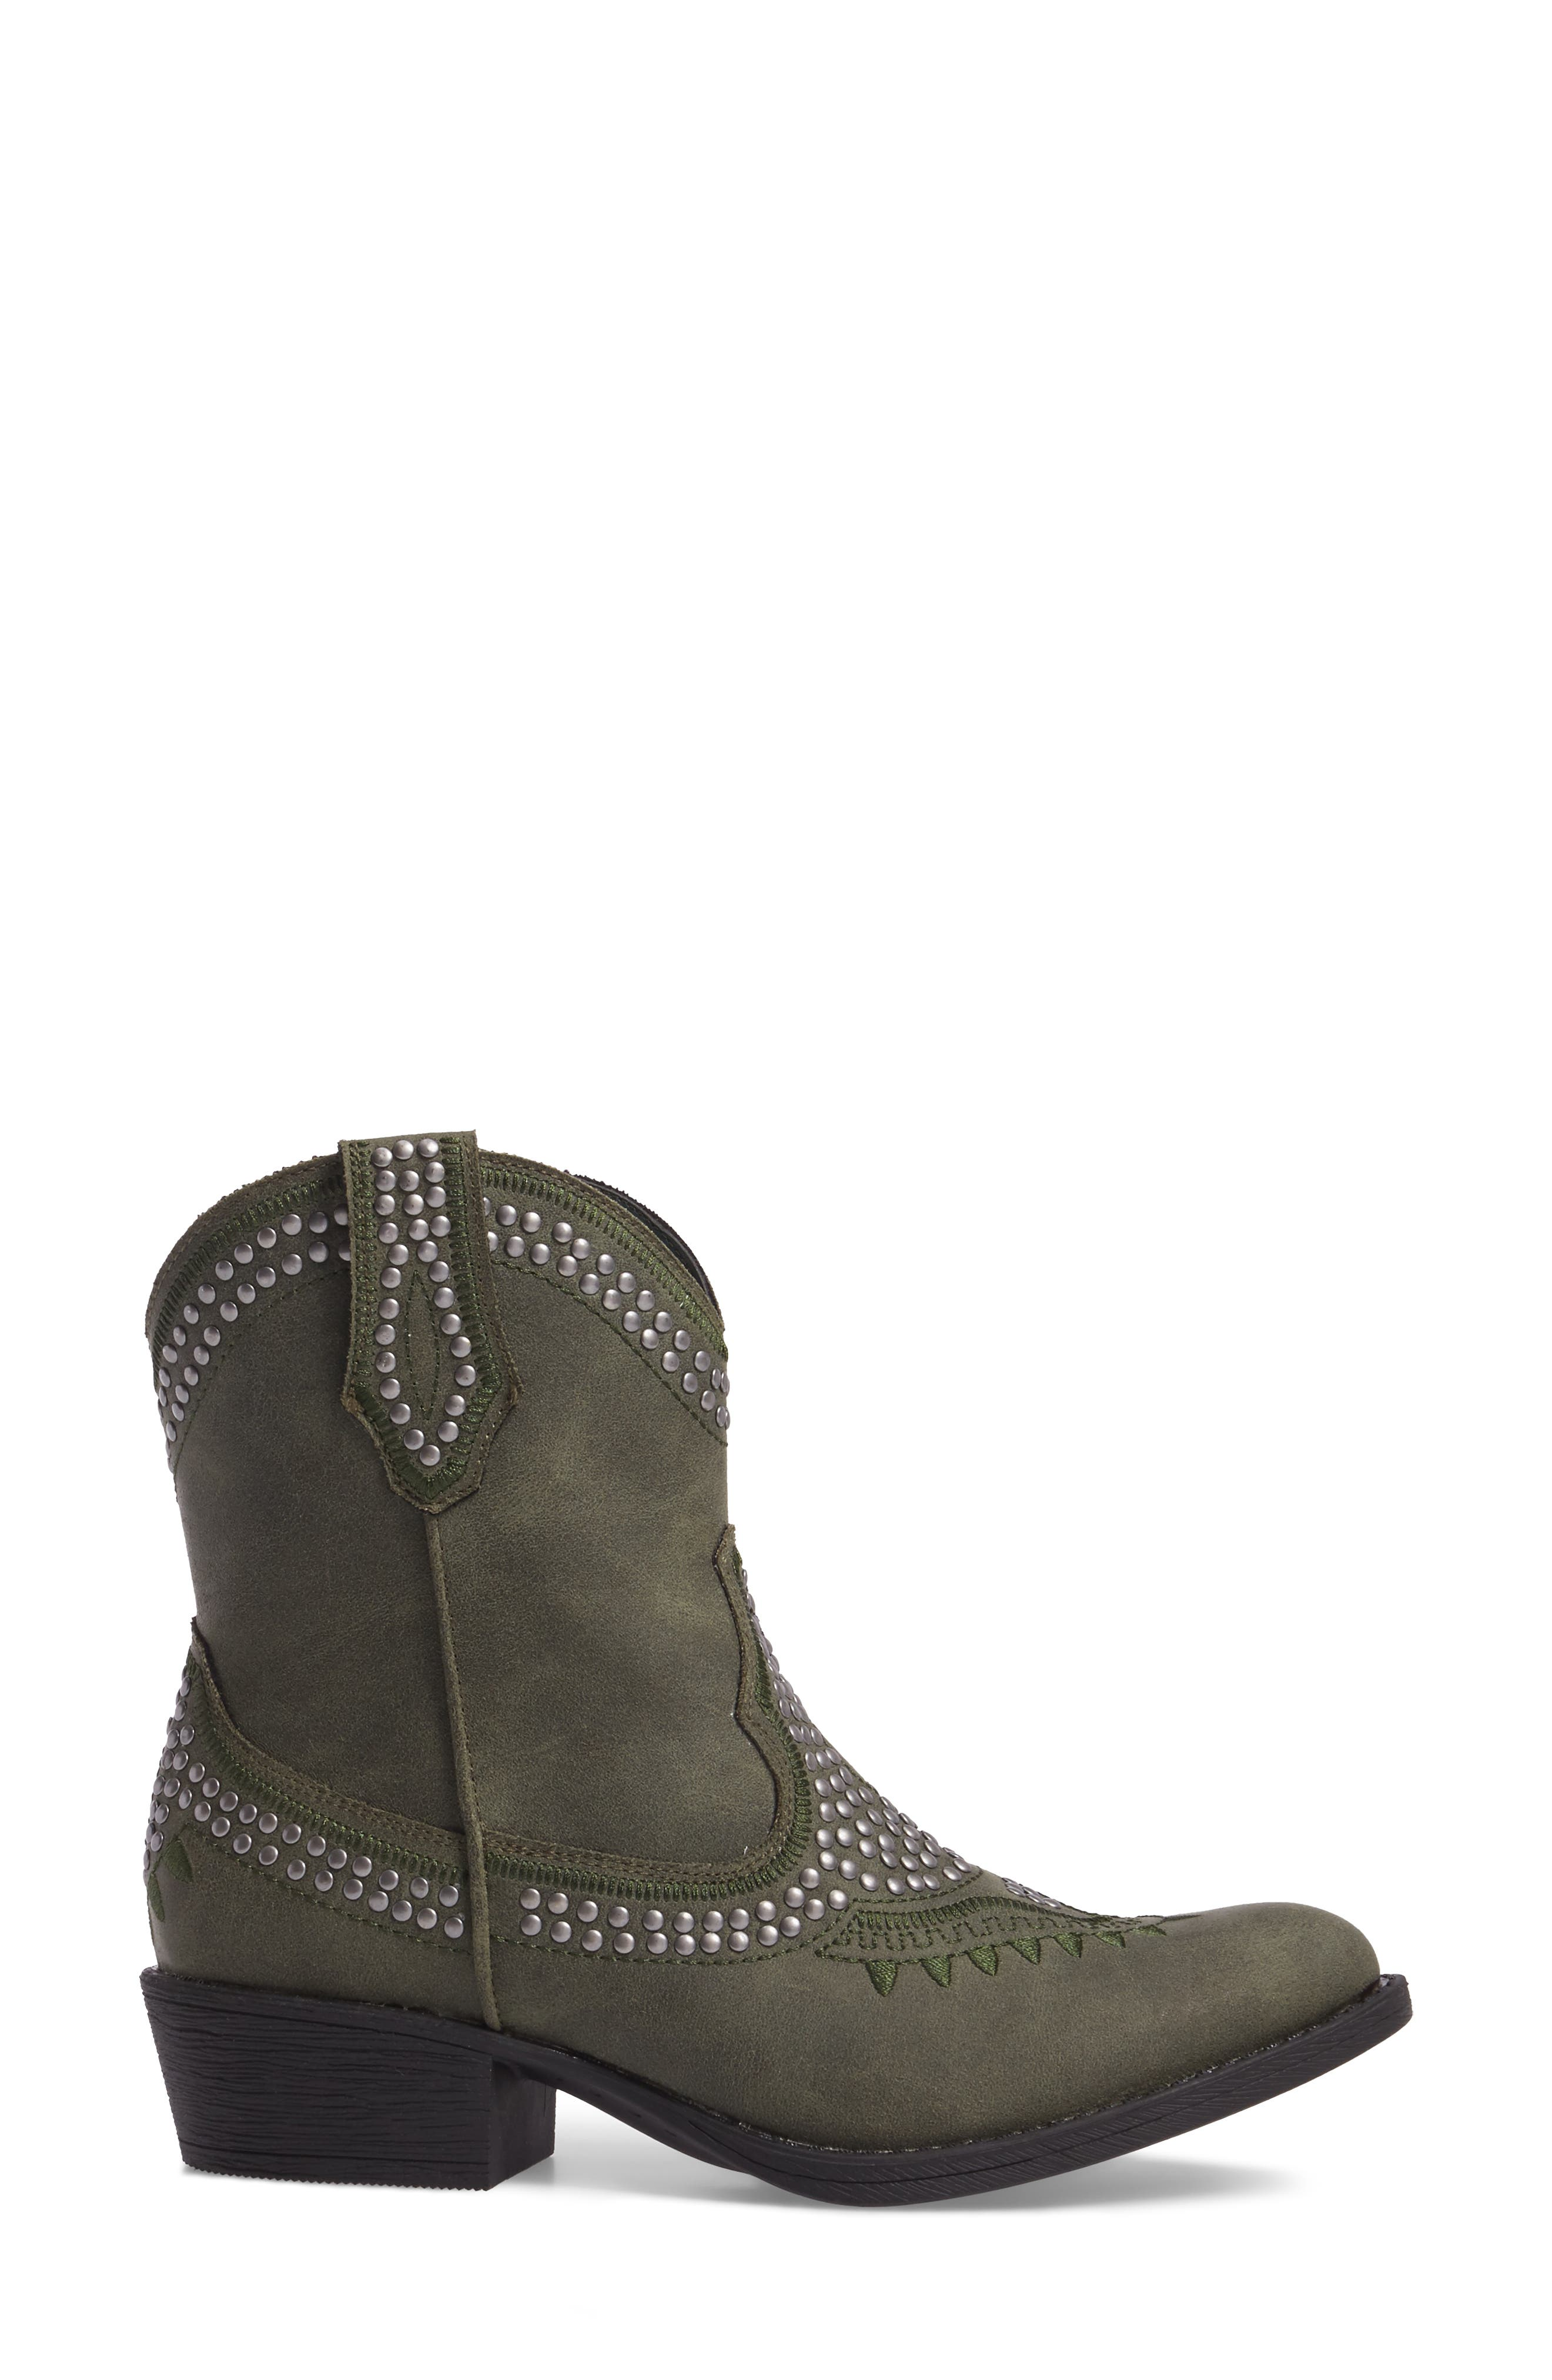 Amour Embellished Western Bootie,                             Alternate thumbnail 9, color,